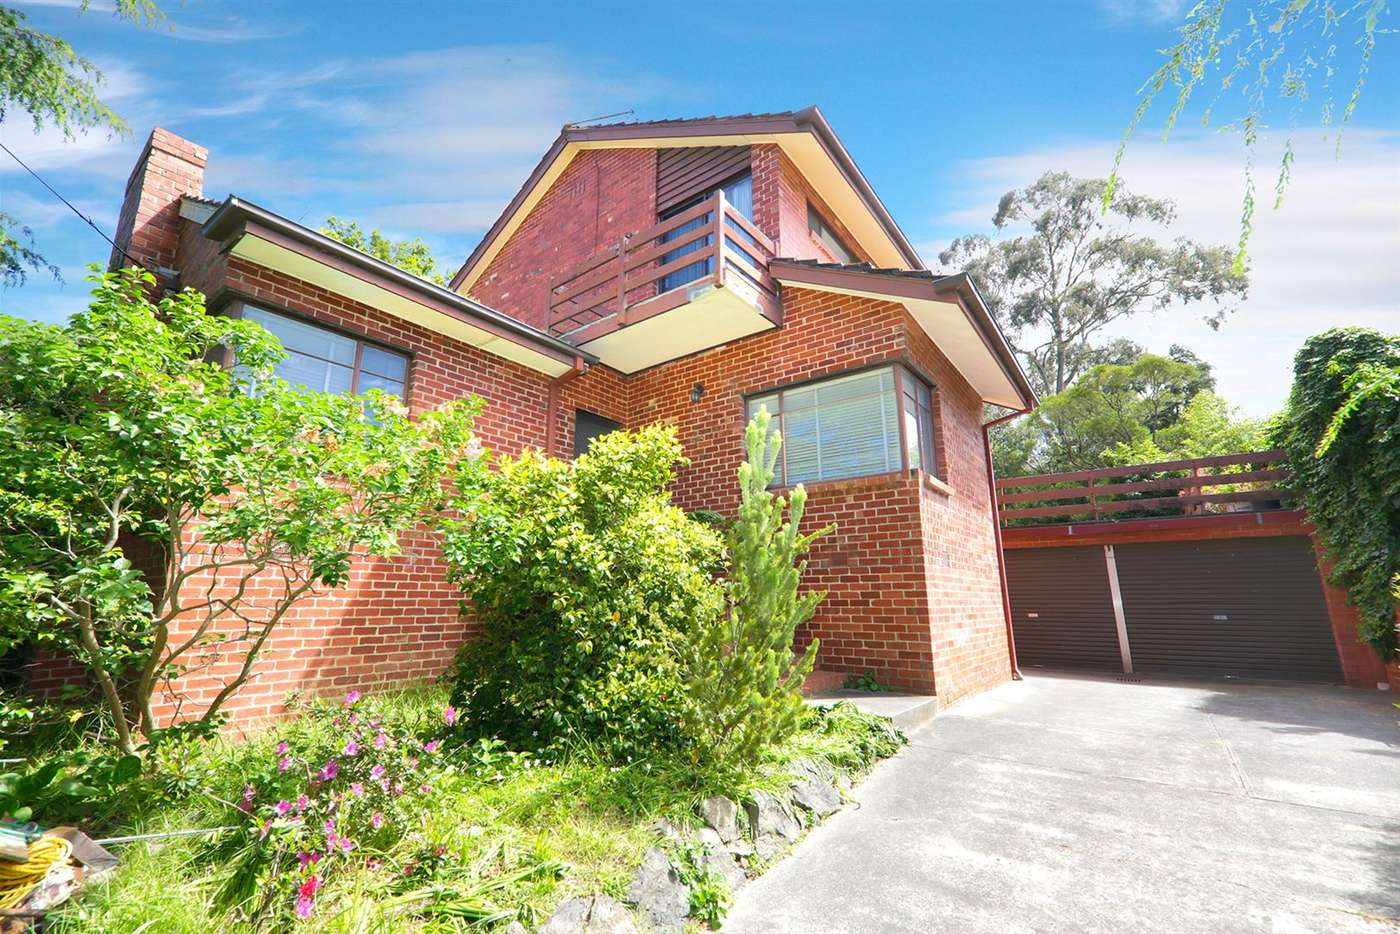 Main view of Homely house listing, 15 Kenny Street, Balwyn North VIC 3104